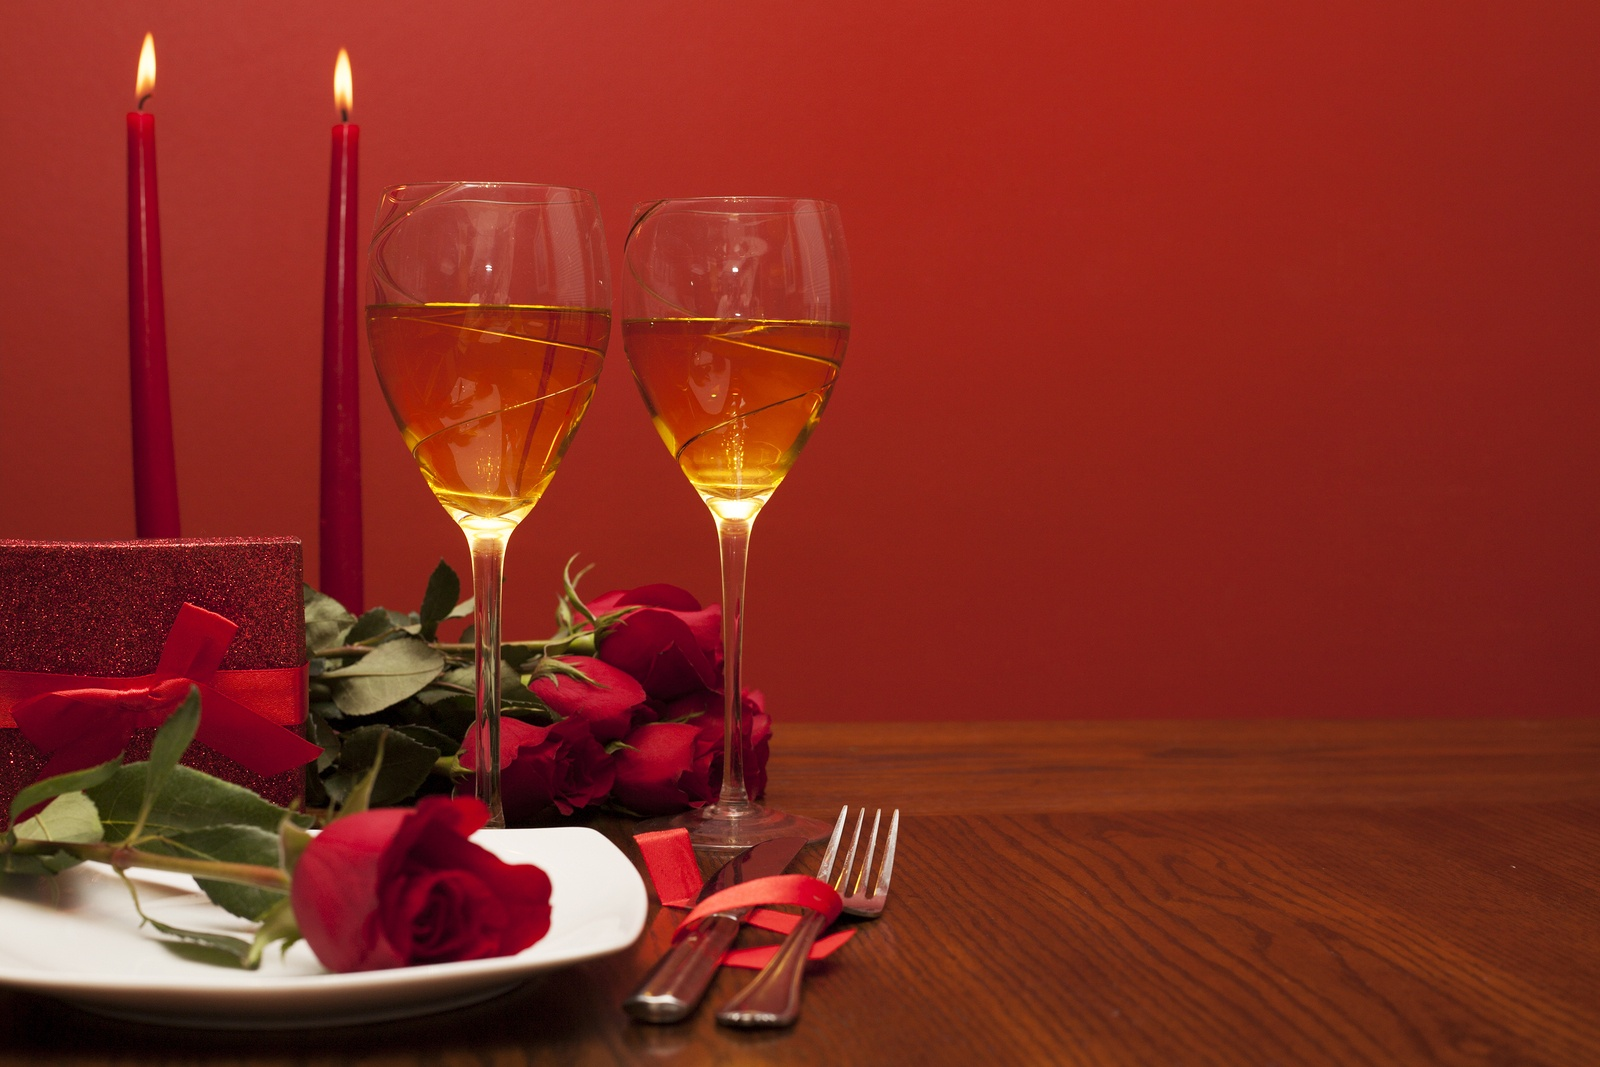 bigstock-romantic-valentine-dinner-116084333.jpg